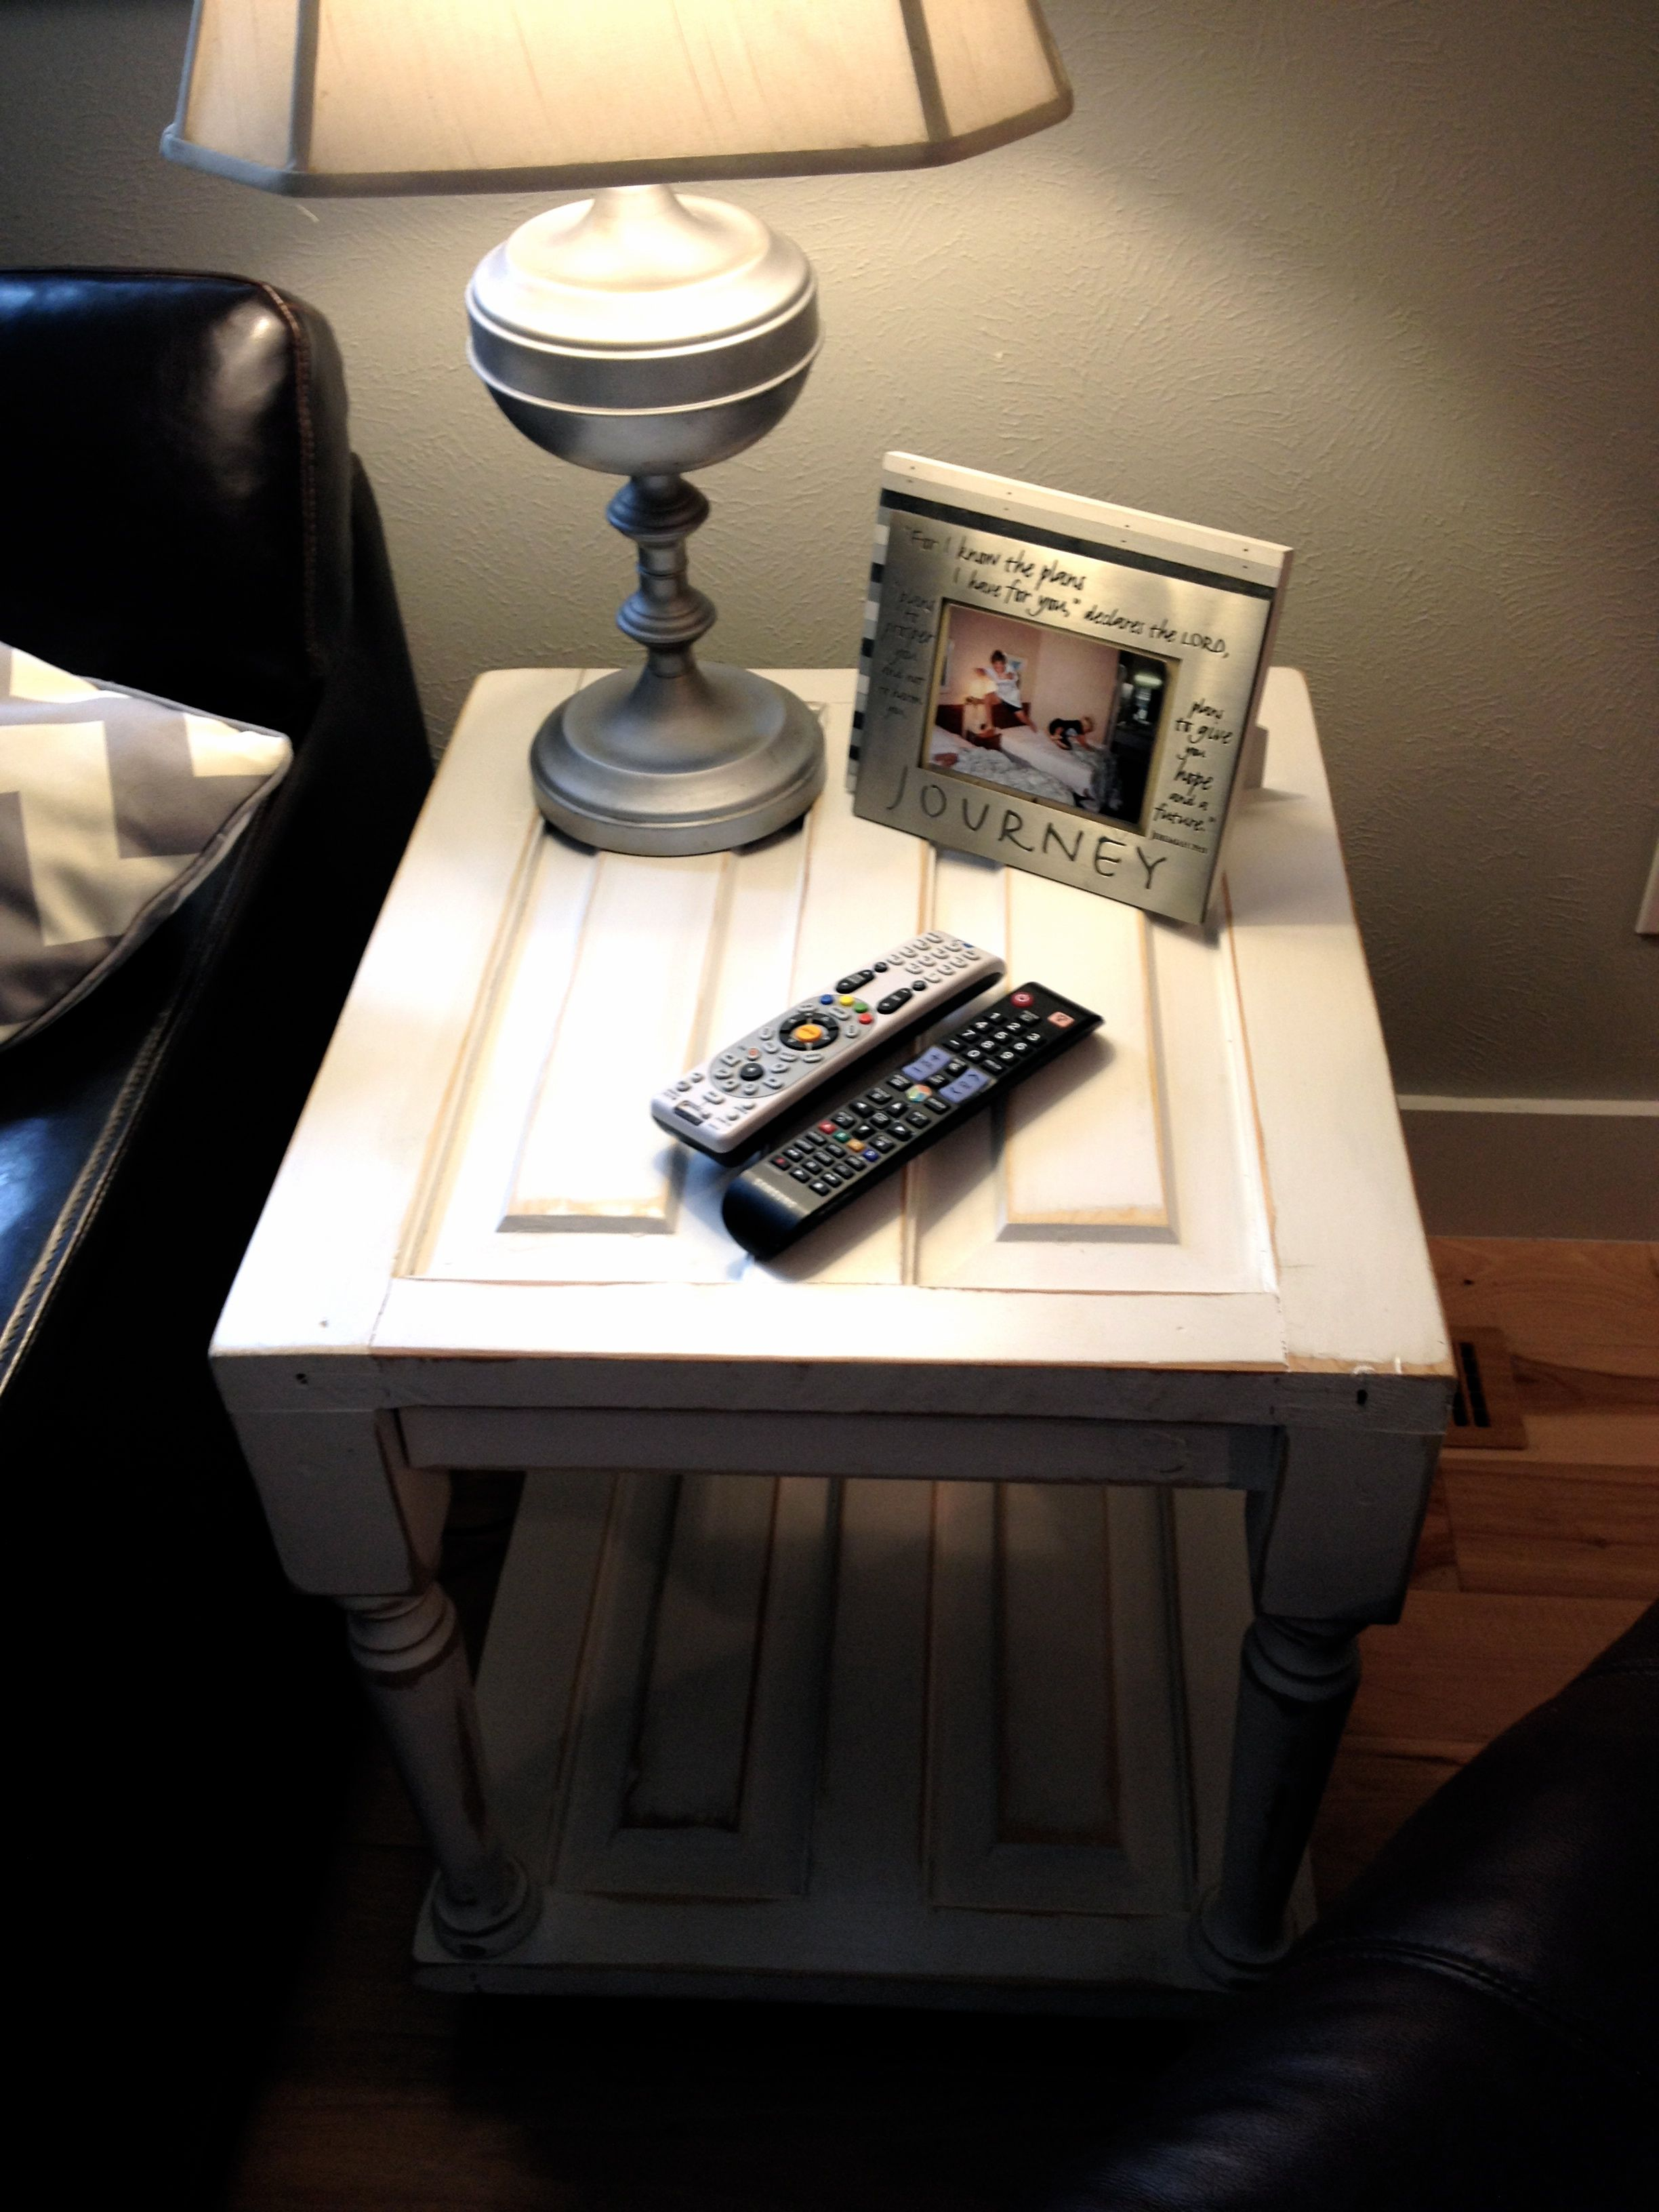 Up Cycled End Table Mage From Salvaged Door Cut In Half For A Shelf On Bottom Junk Chic 5280